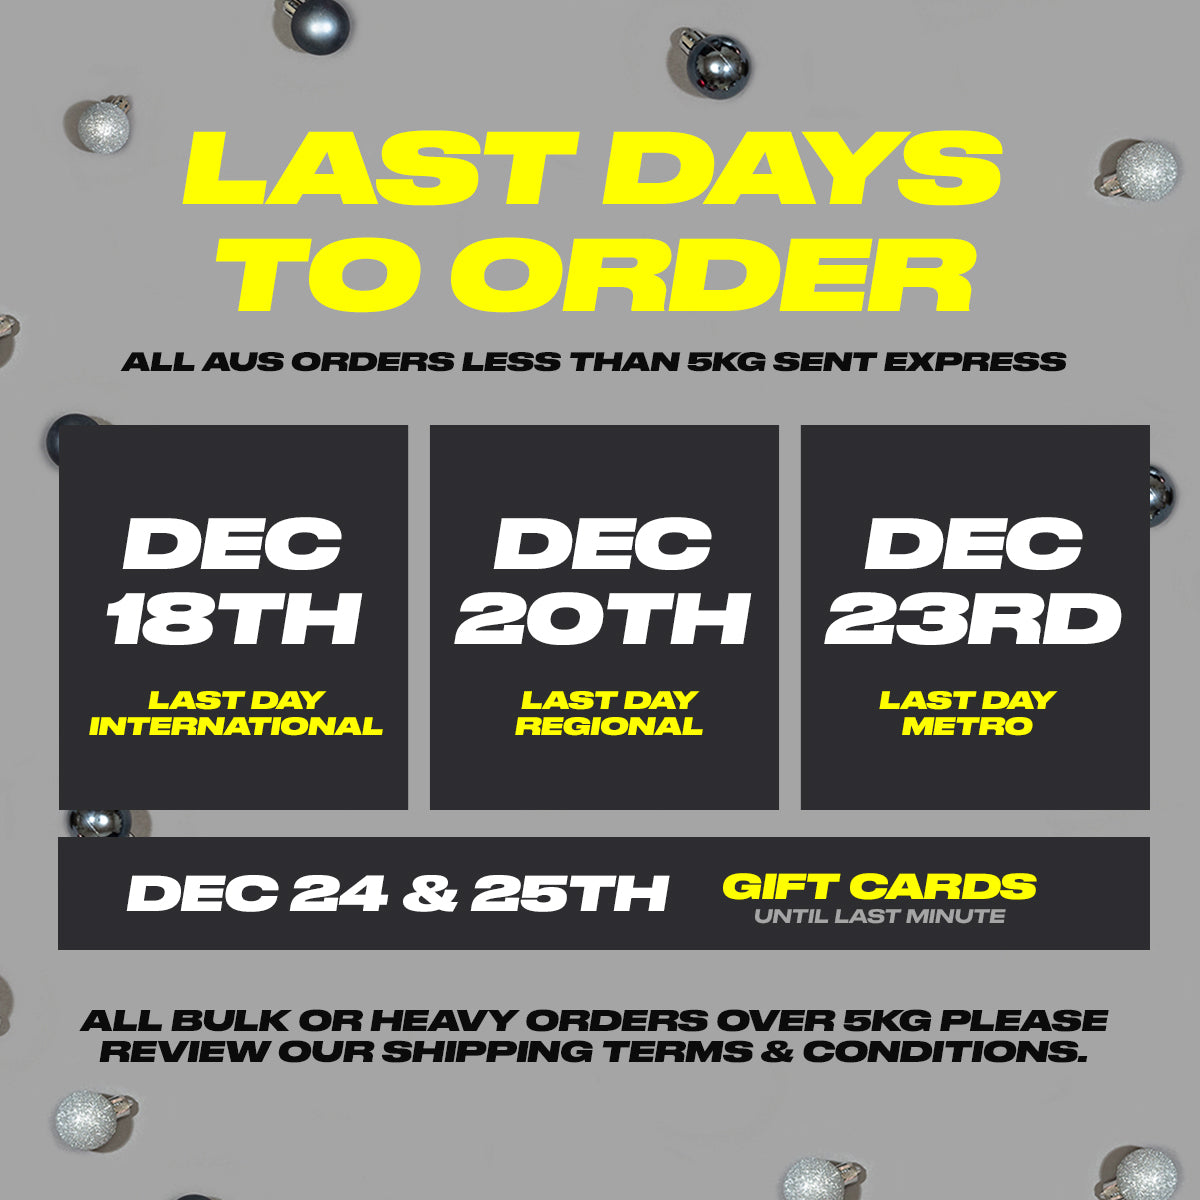 Last Days to Order